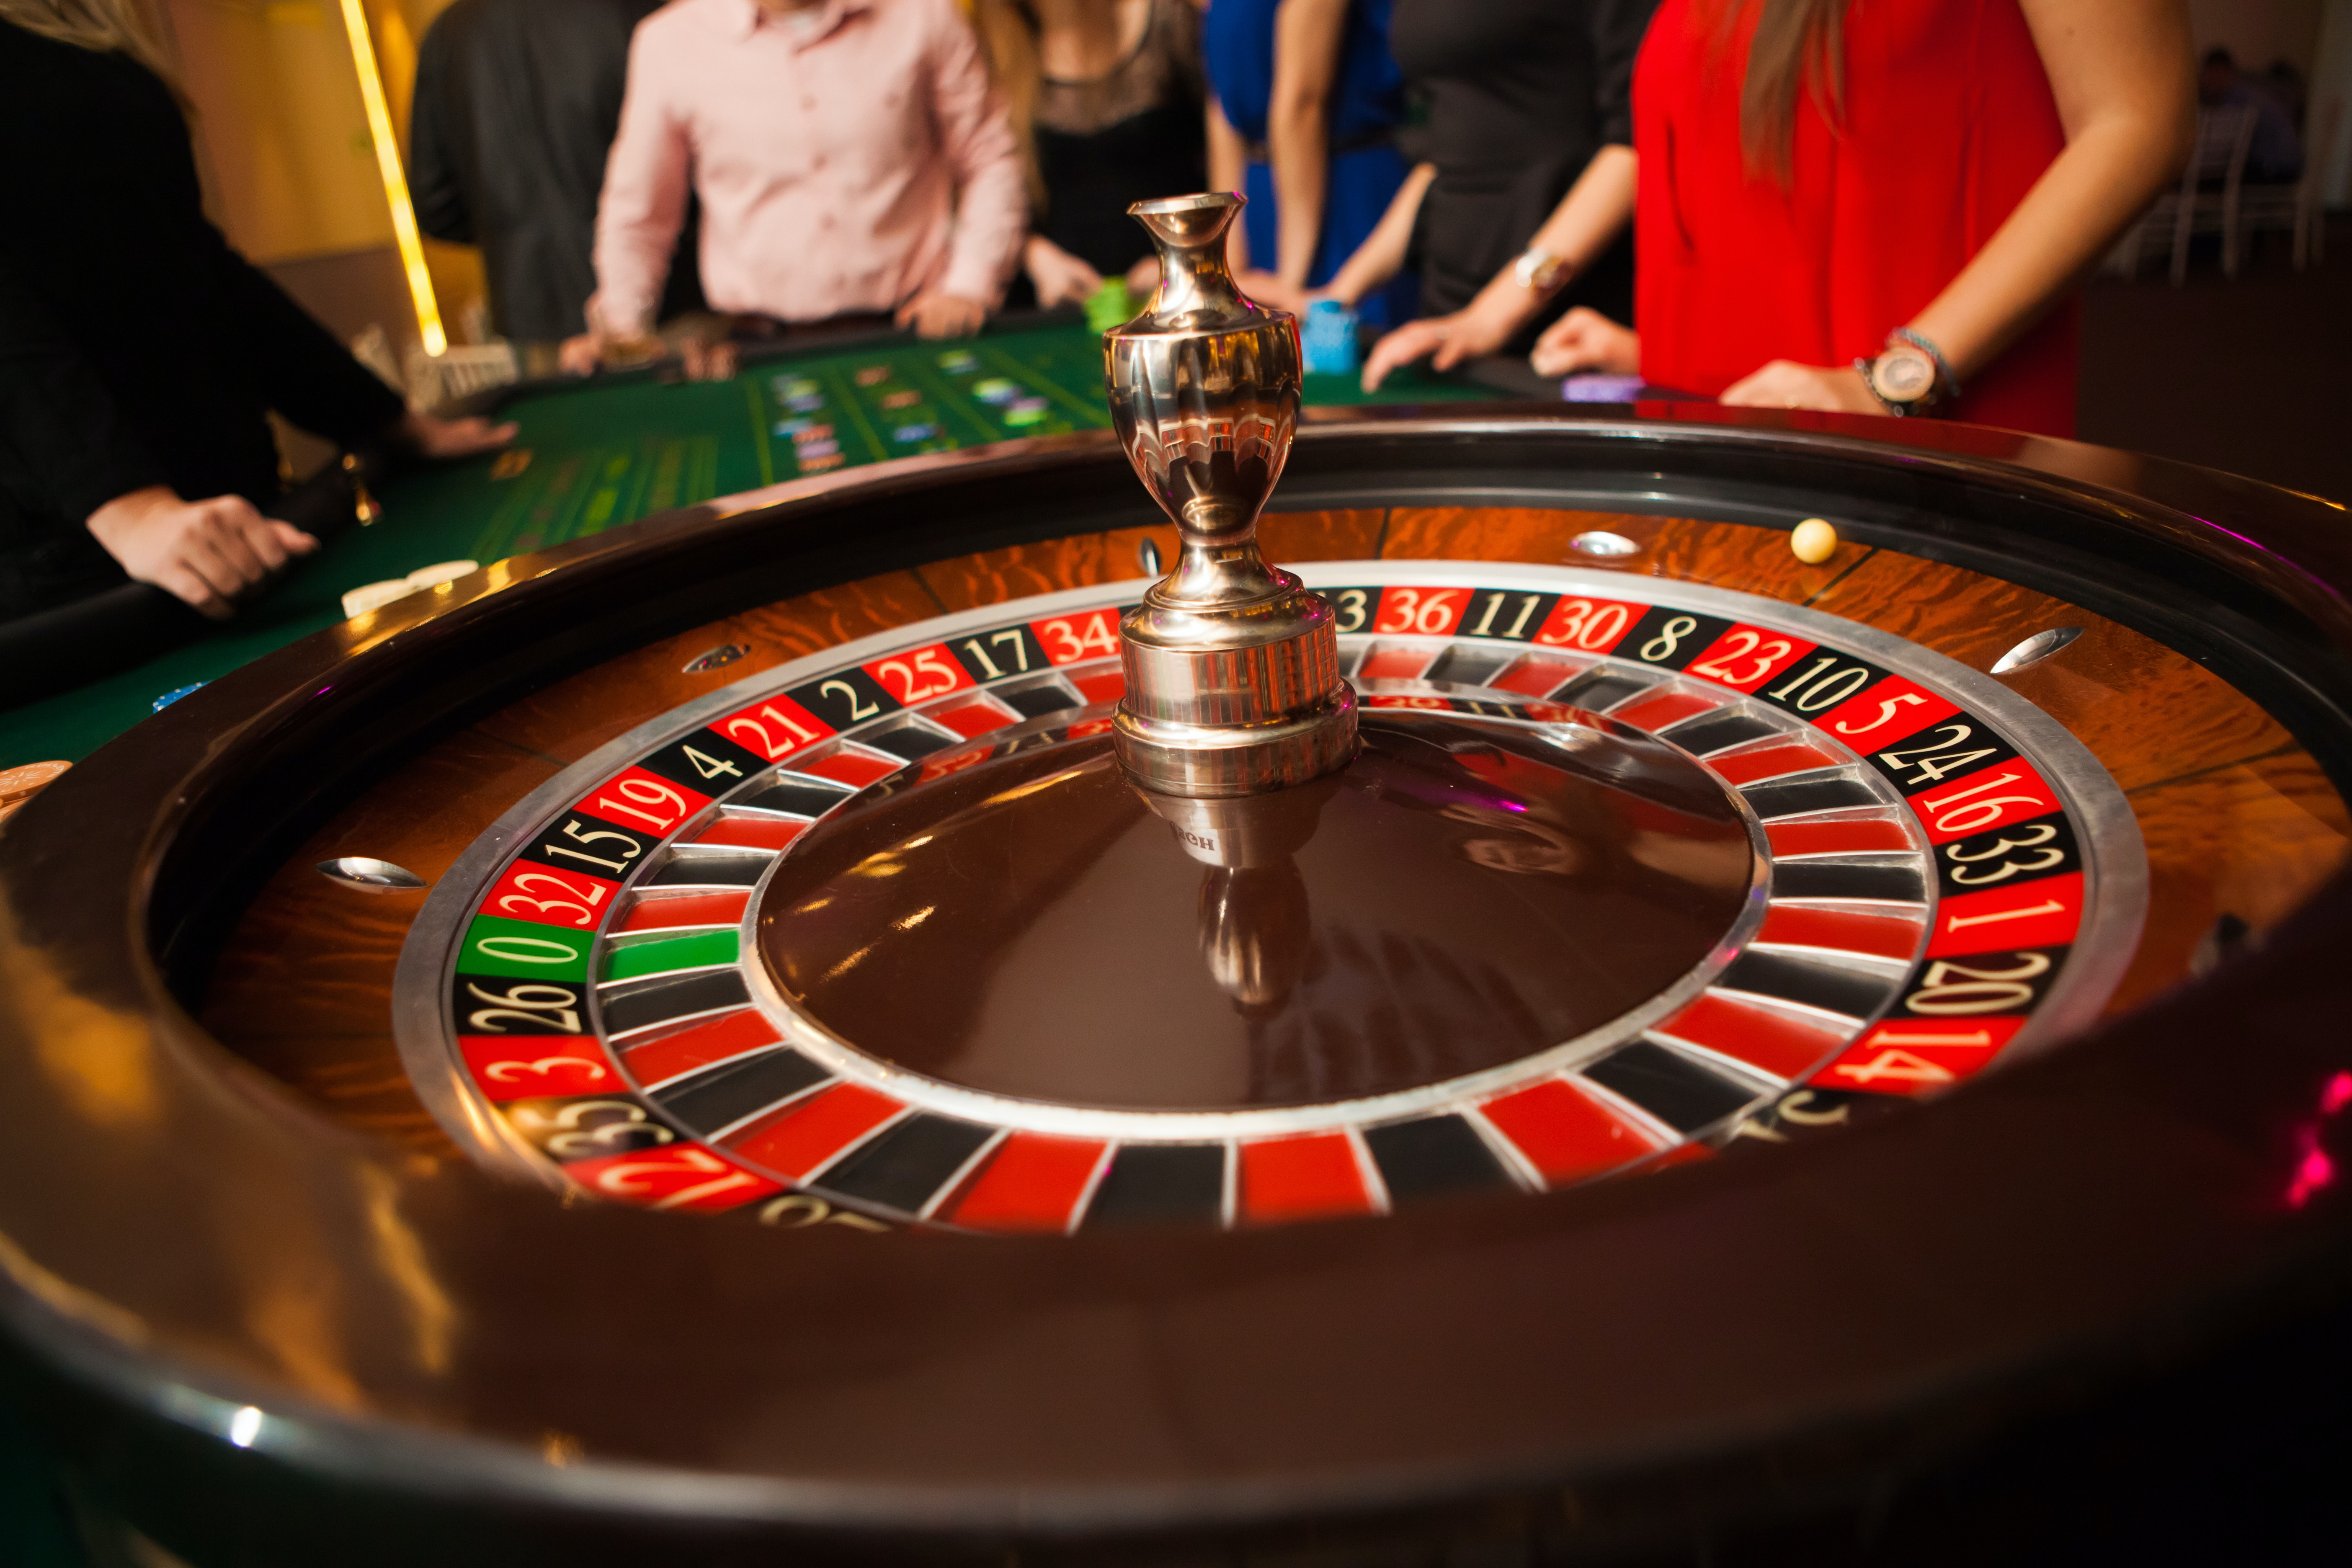 What is the mathematical figure for roulette joe ingram poker acr